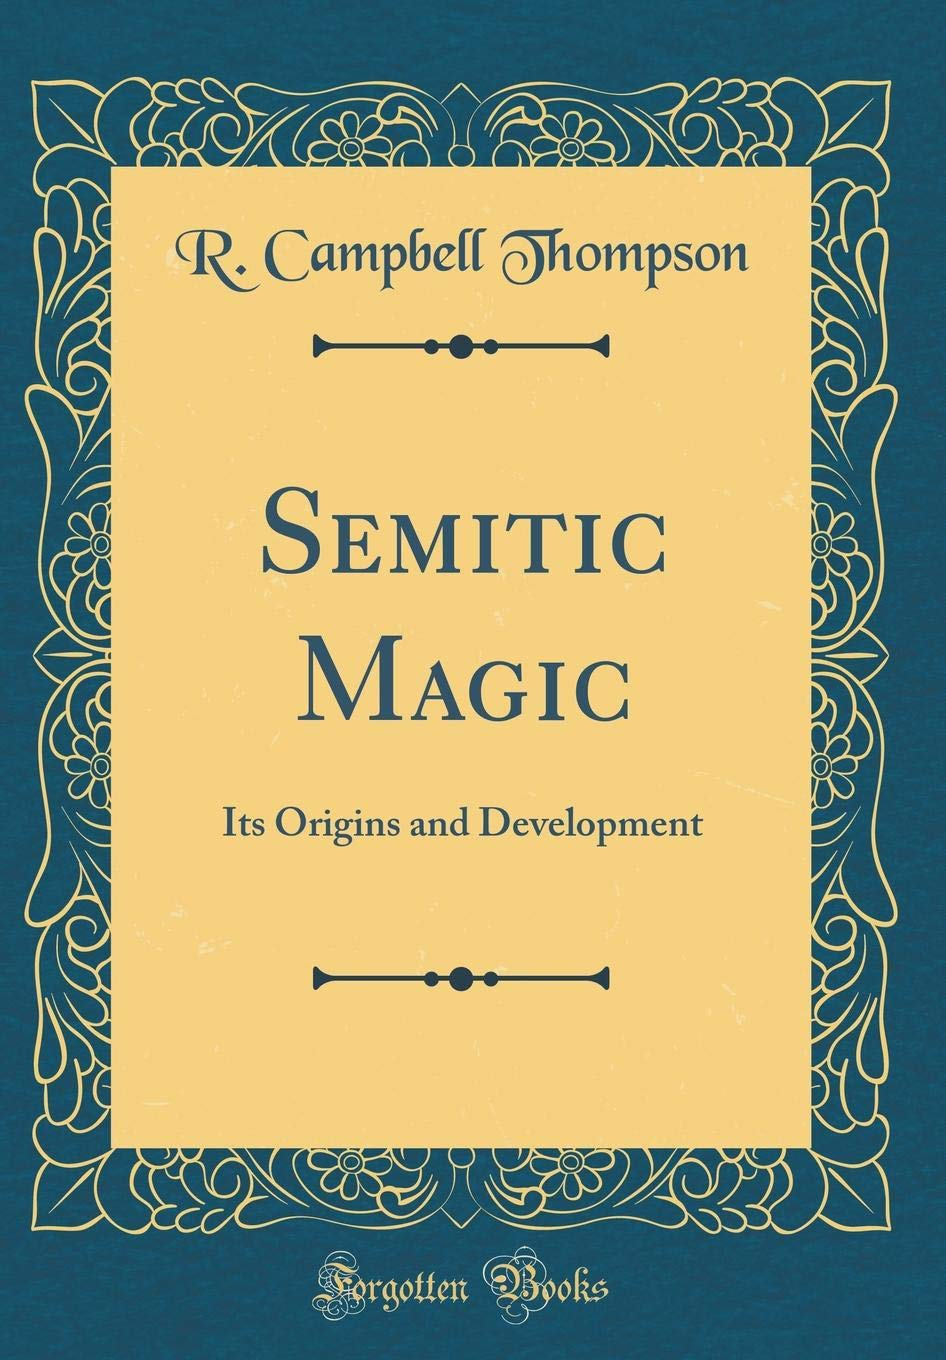 Semitic Magic: Its Origins and Development